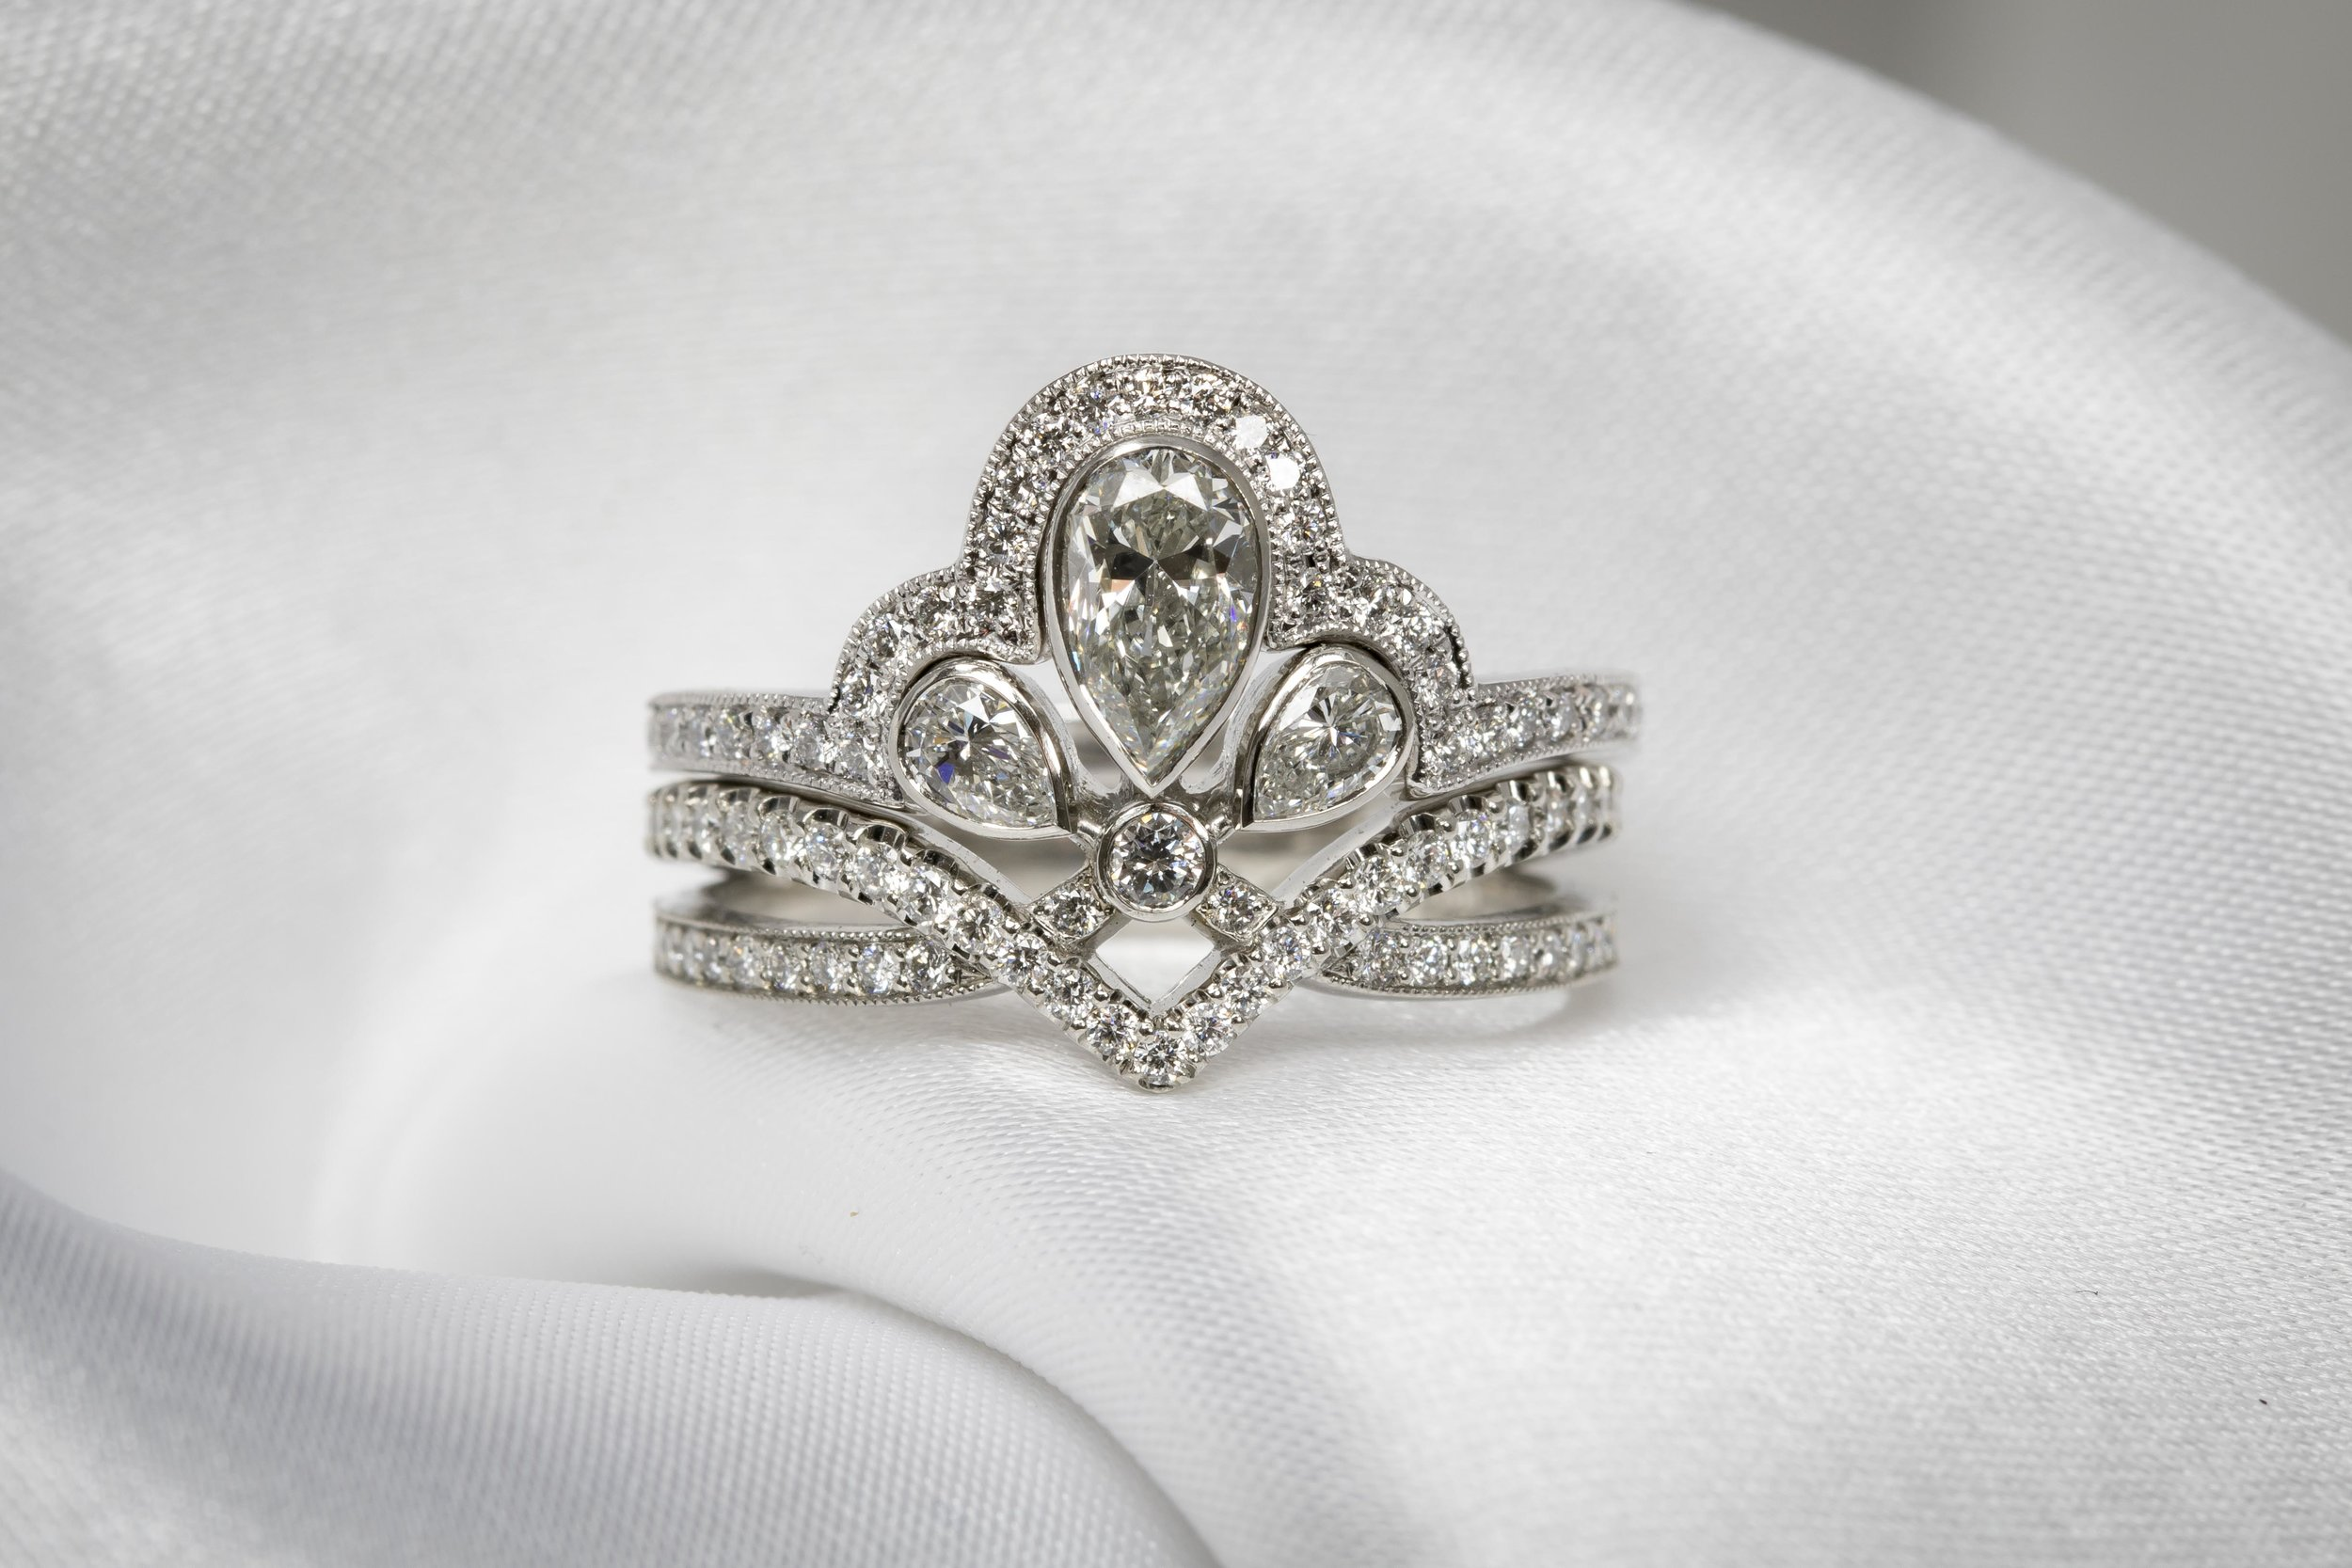 Both diamond and platinum rings fitting perfectly together.